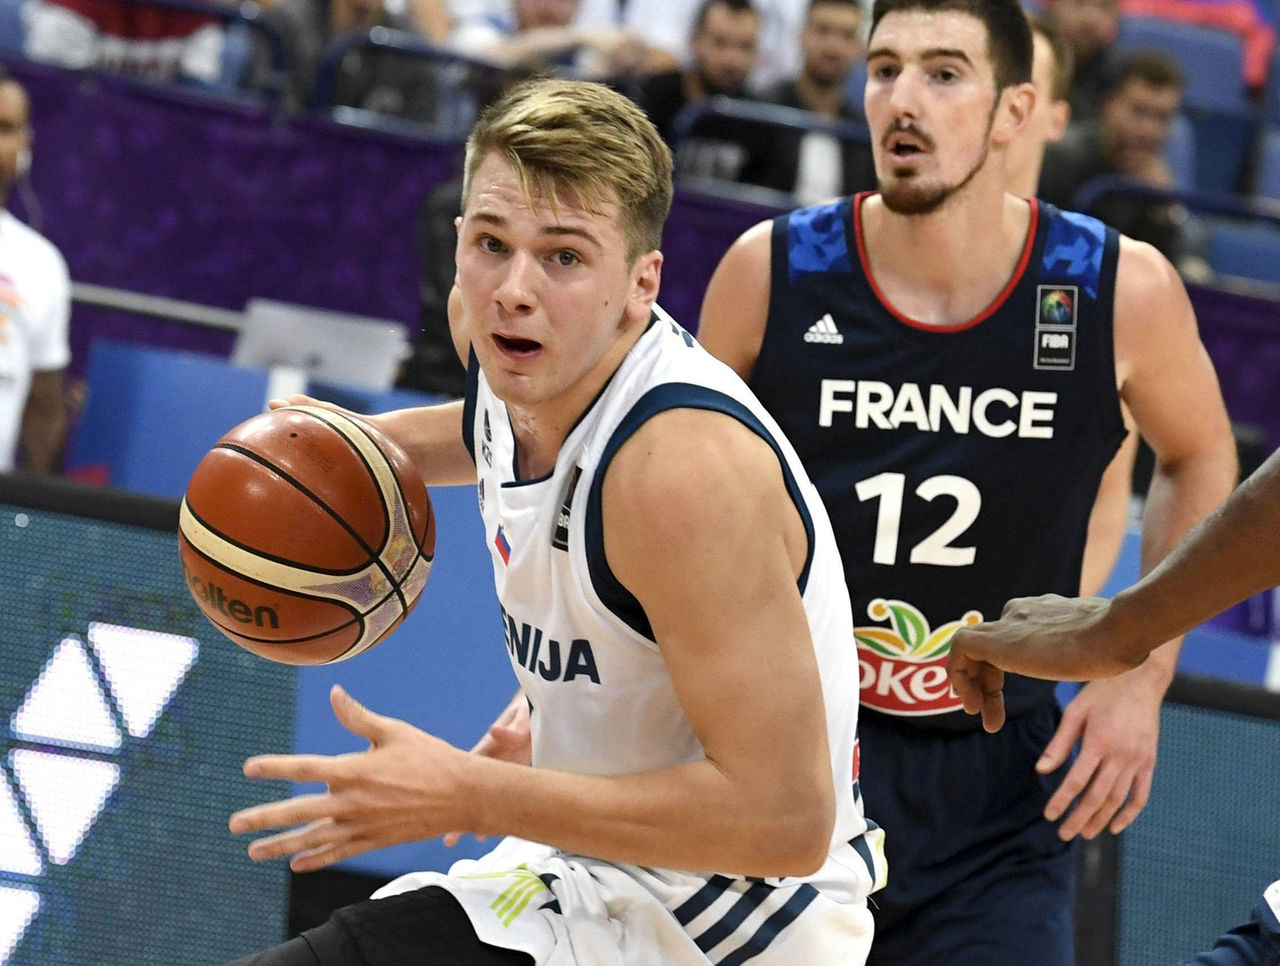 Cropped 2017 09 06t125309z 2047460830 rc1fbafea6a0 rtrmadp 3 basketball eurobasket svn fra